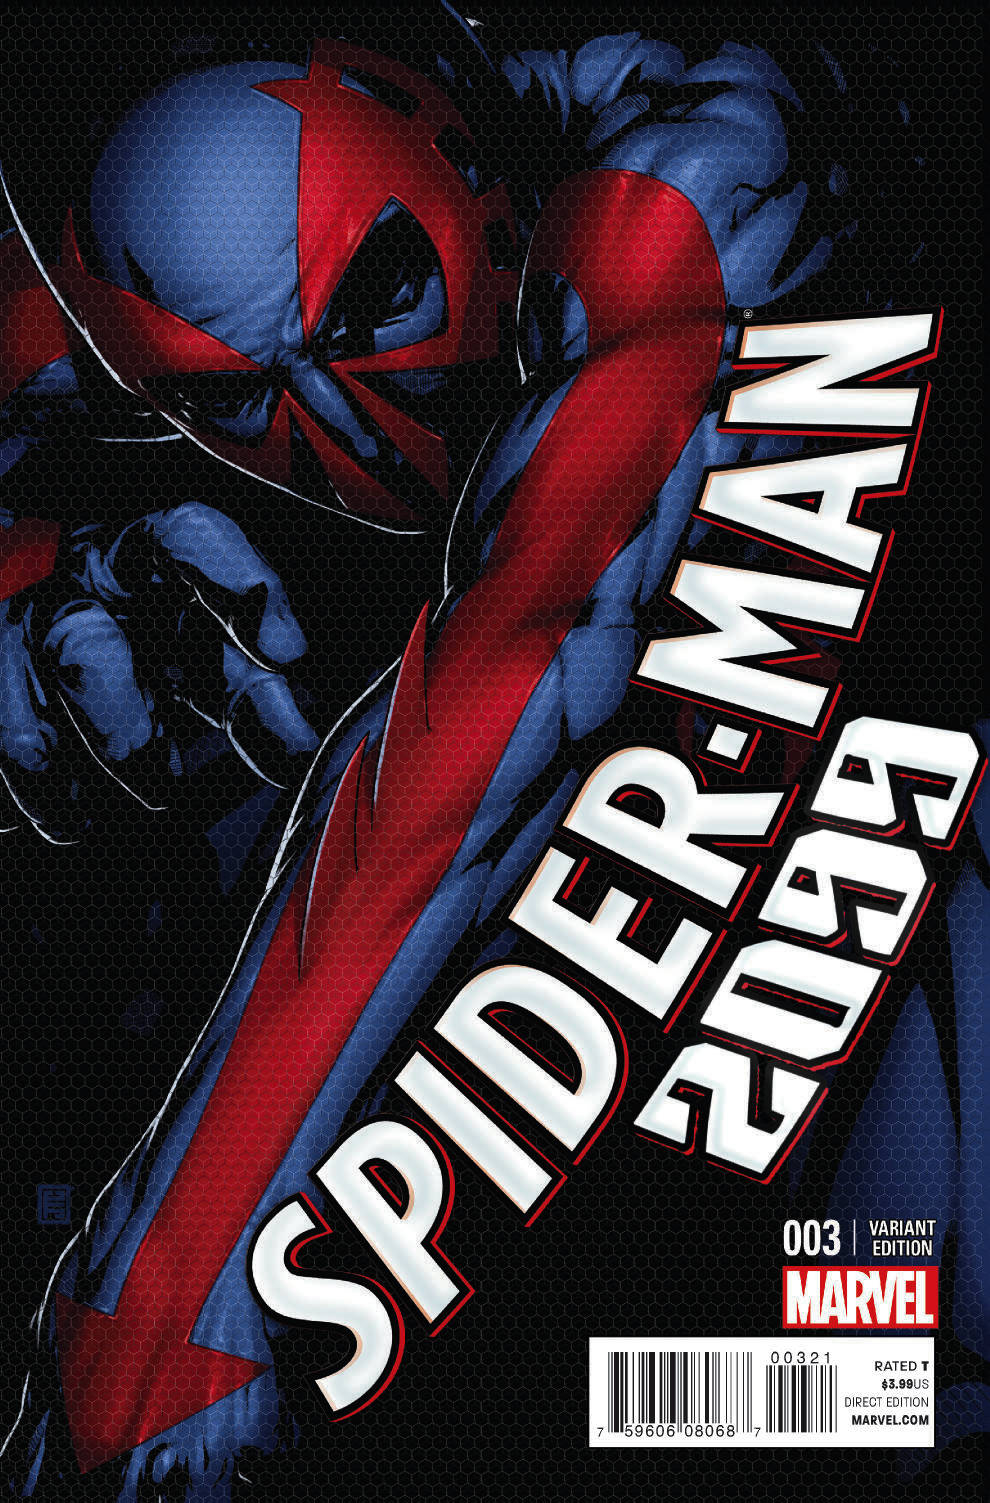 SPIDER-MAN 2099 #3 CHRISTOPHER VAR